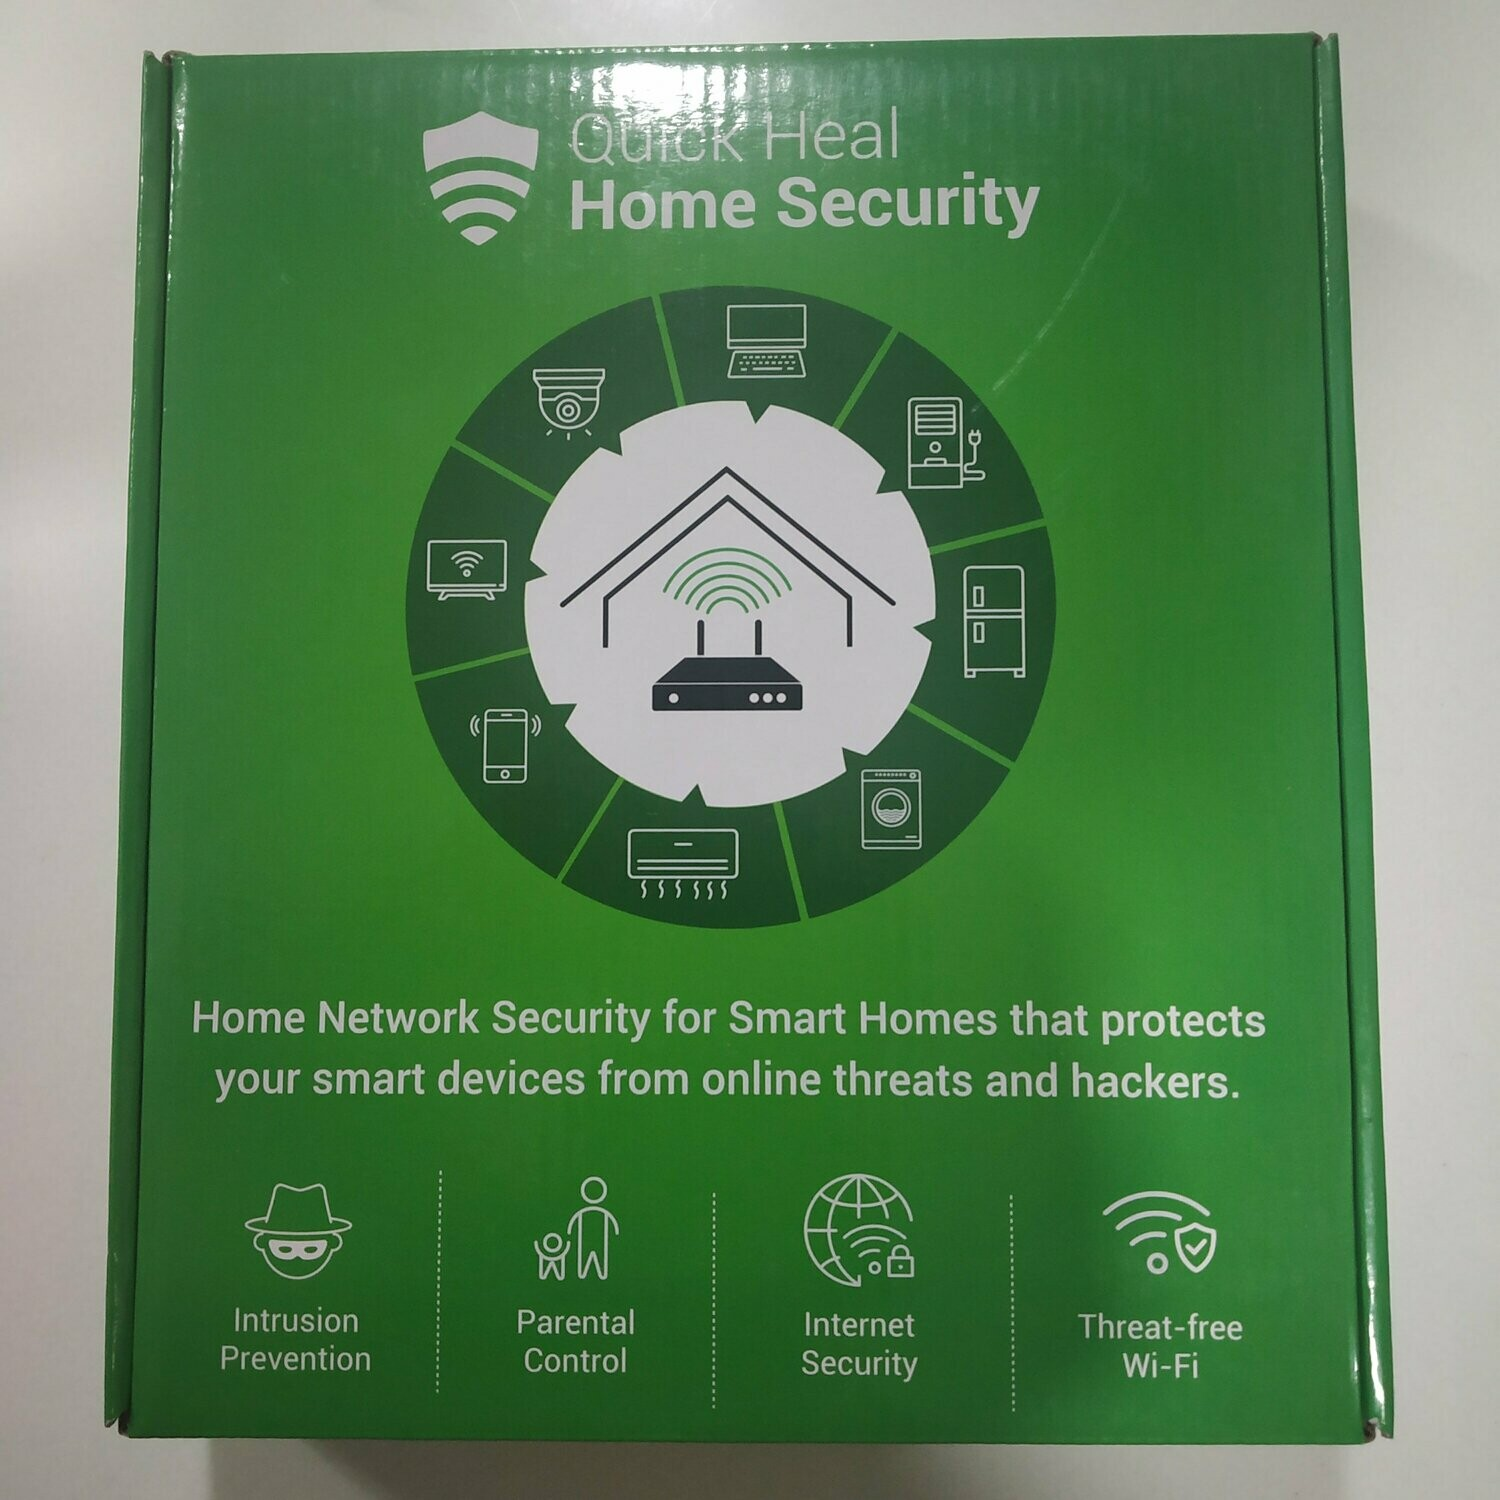 Quick Heal Home Network Security